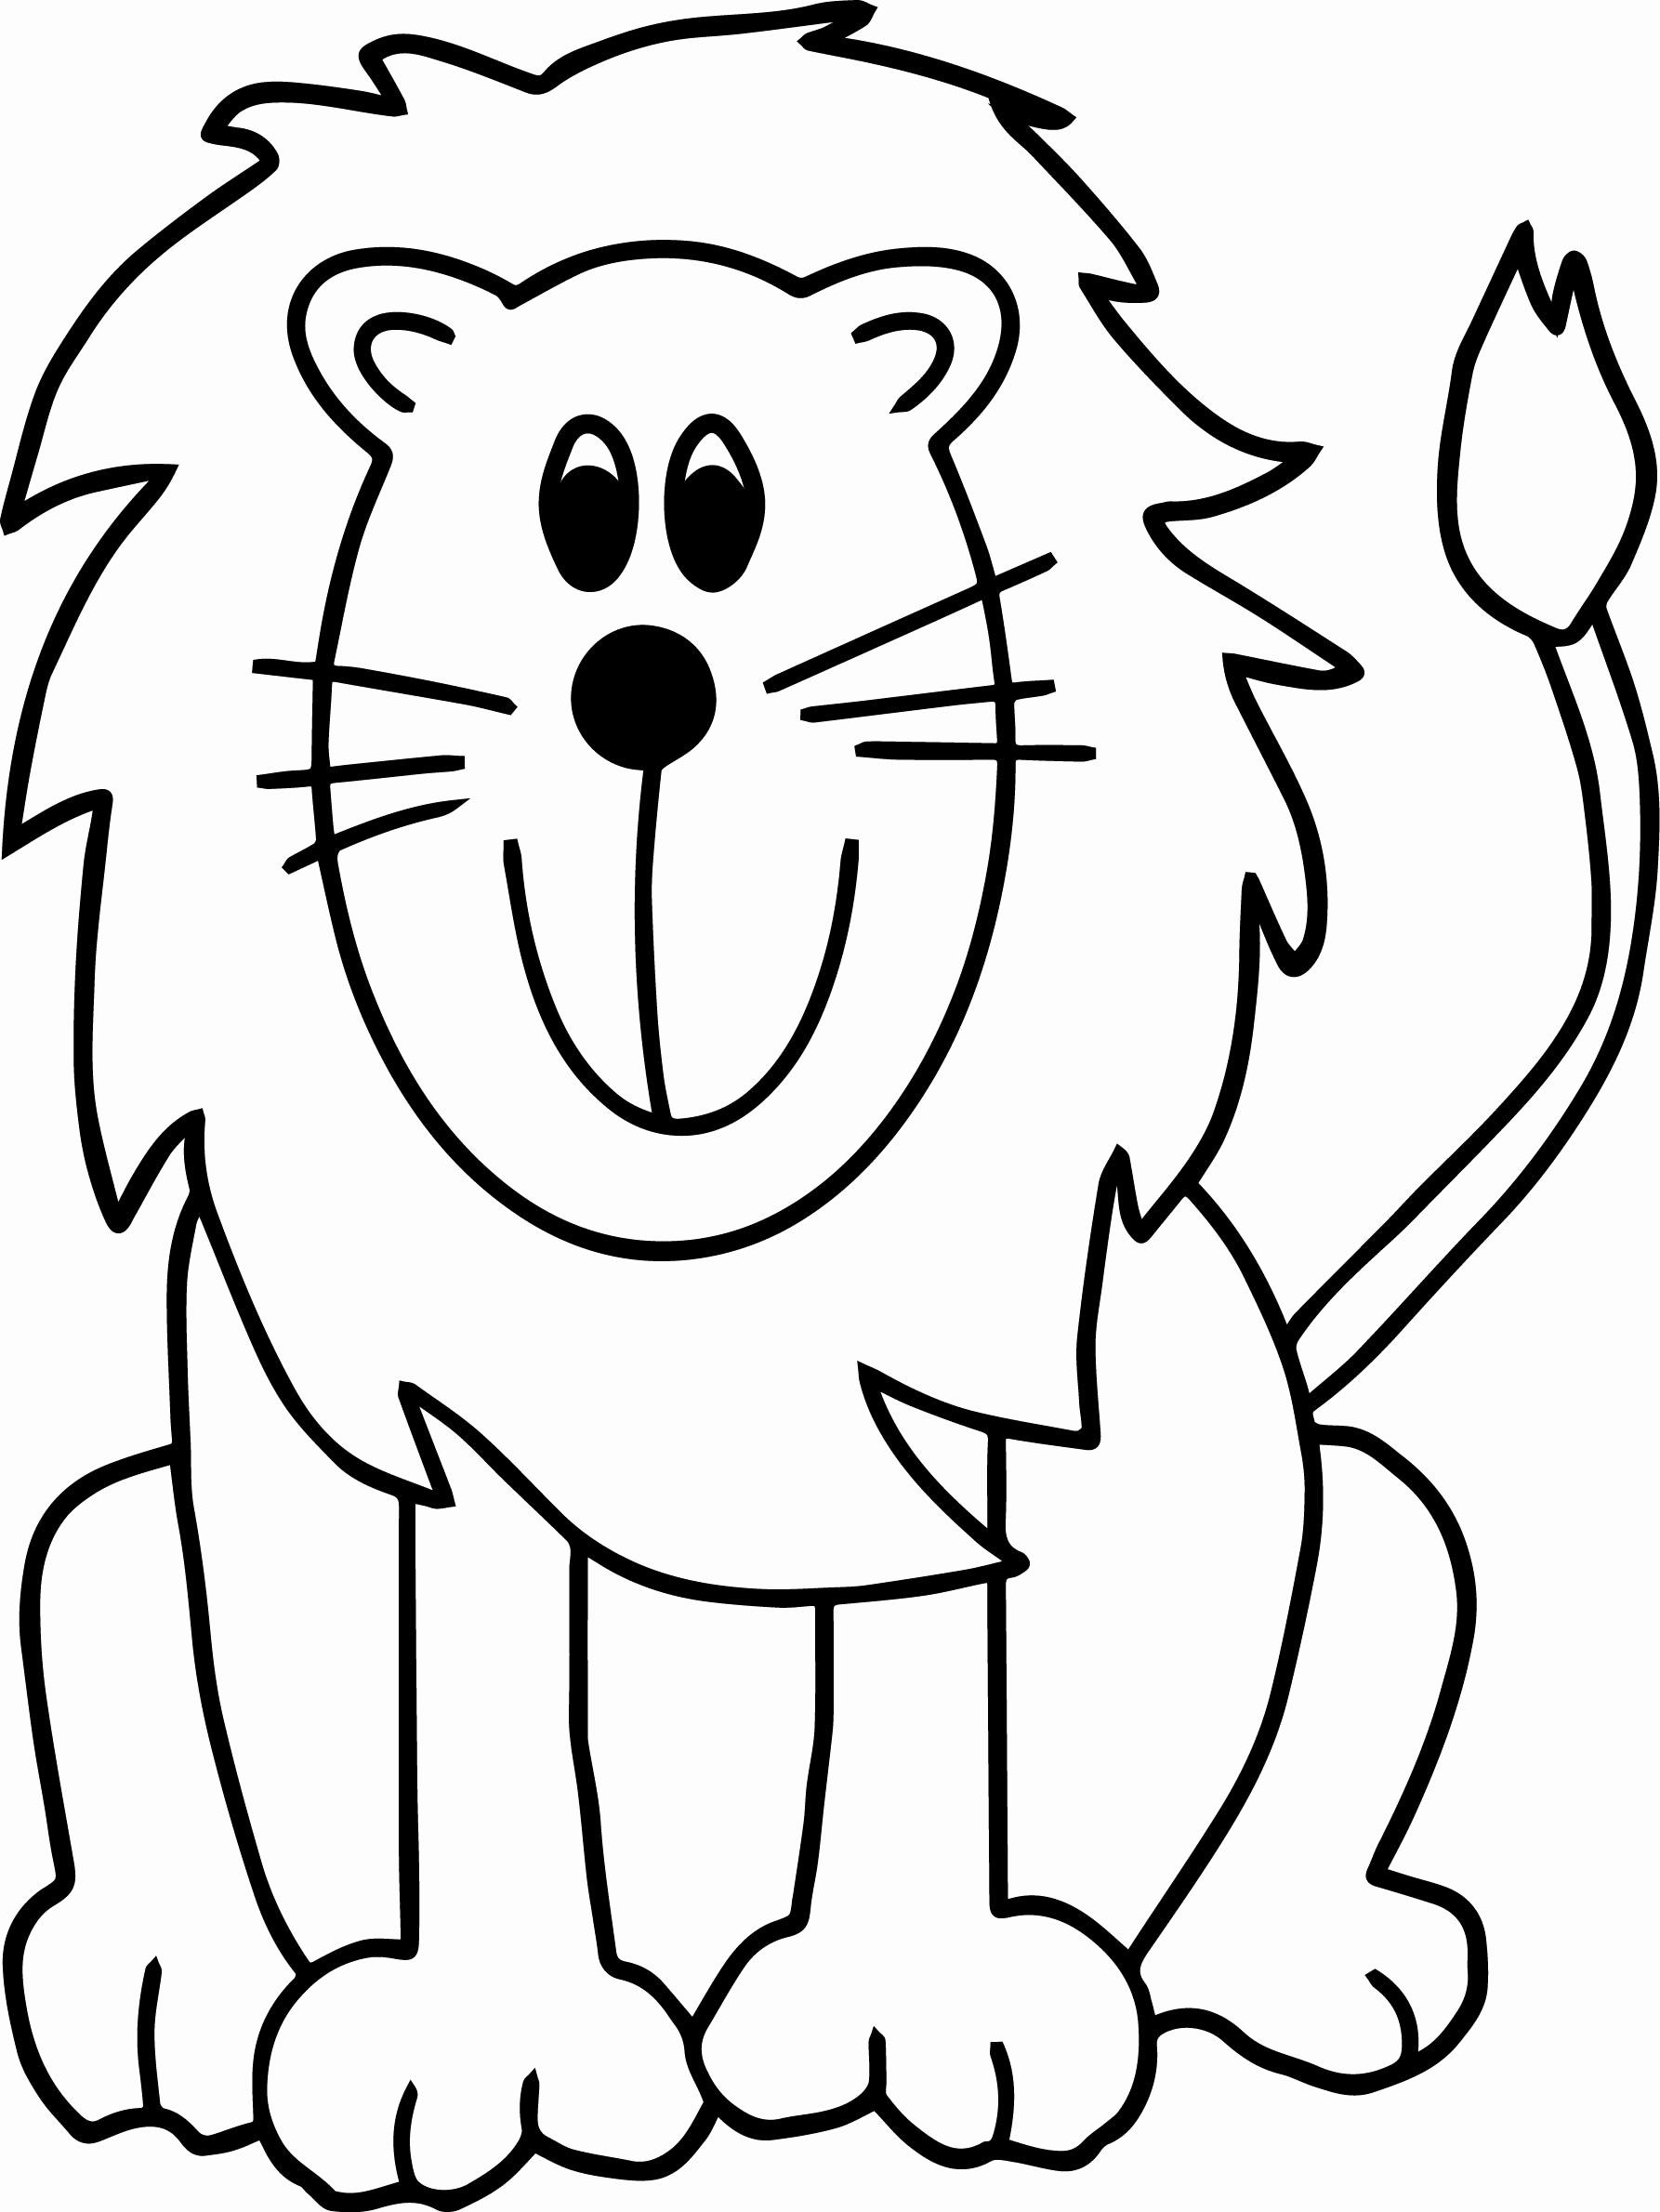 Zoo Animals Coloring Pages in 2020 Zoo animal coloring